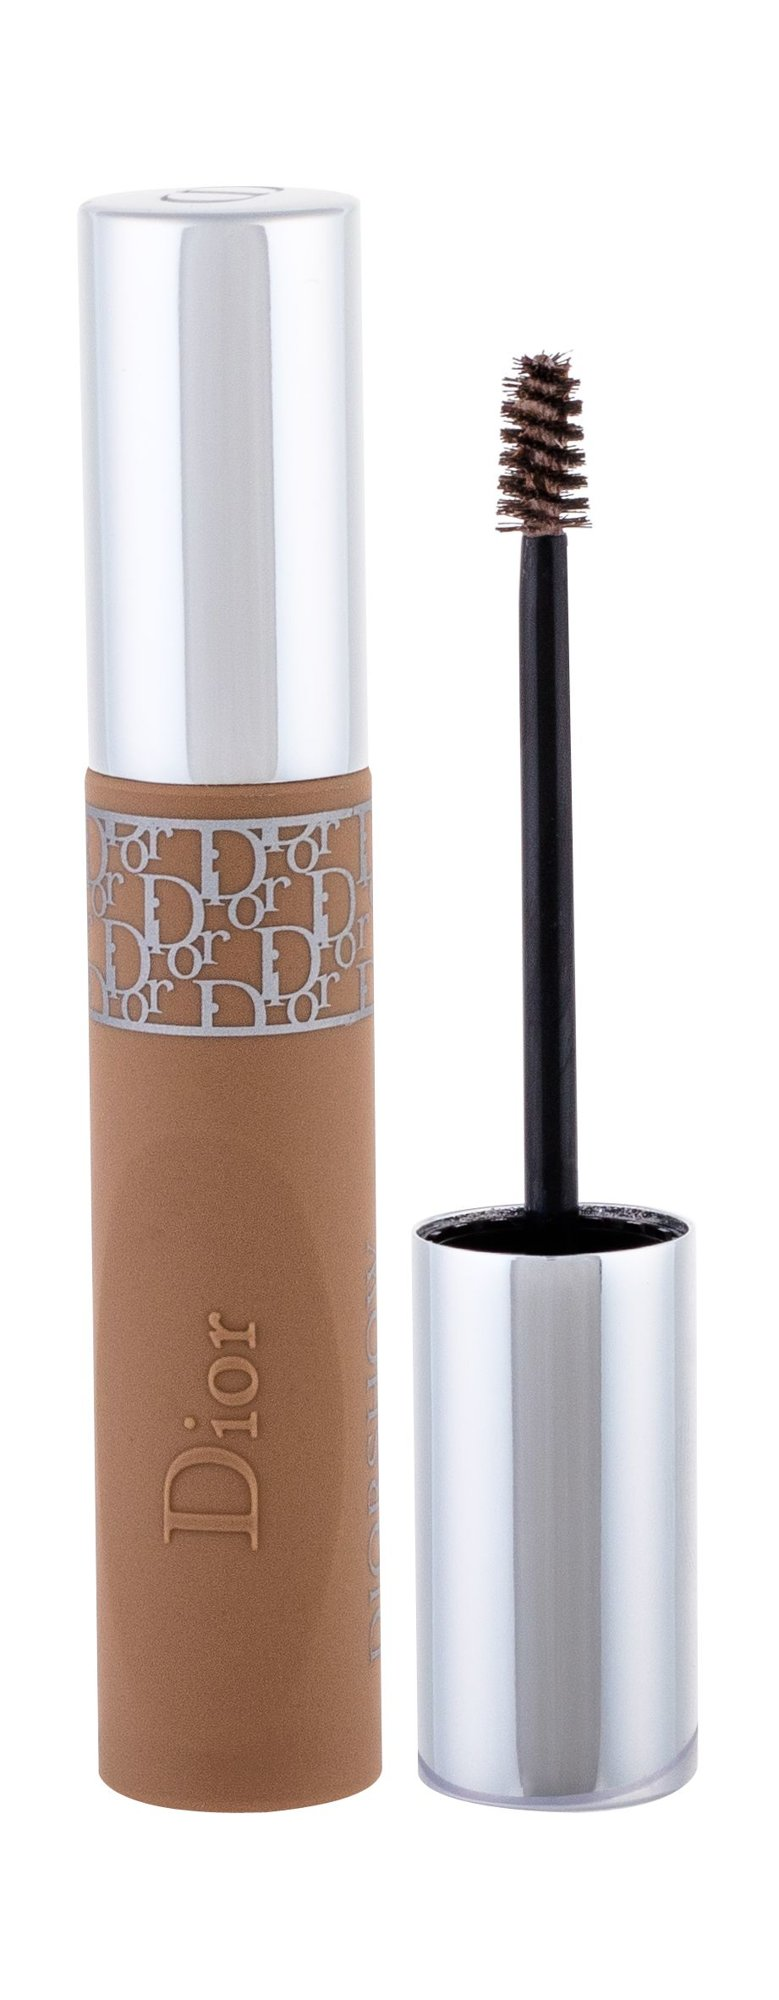 Christian Dior Diorshow Mascara 5ml 011 Blonde